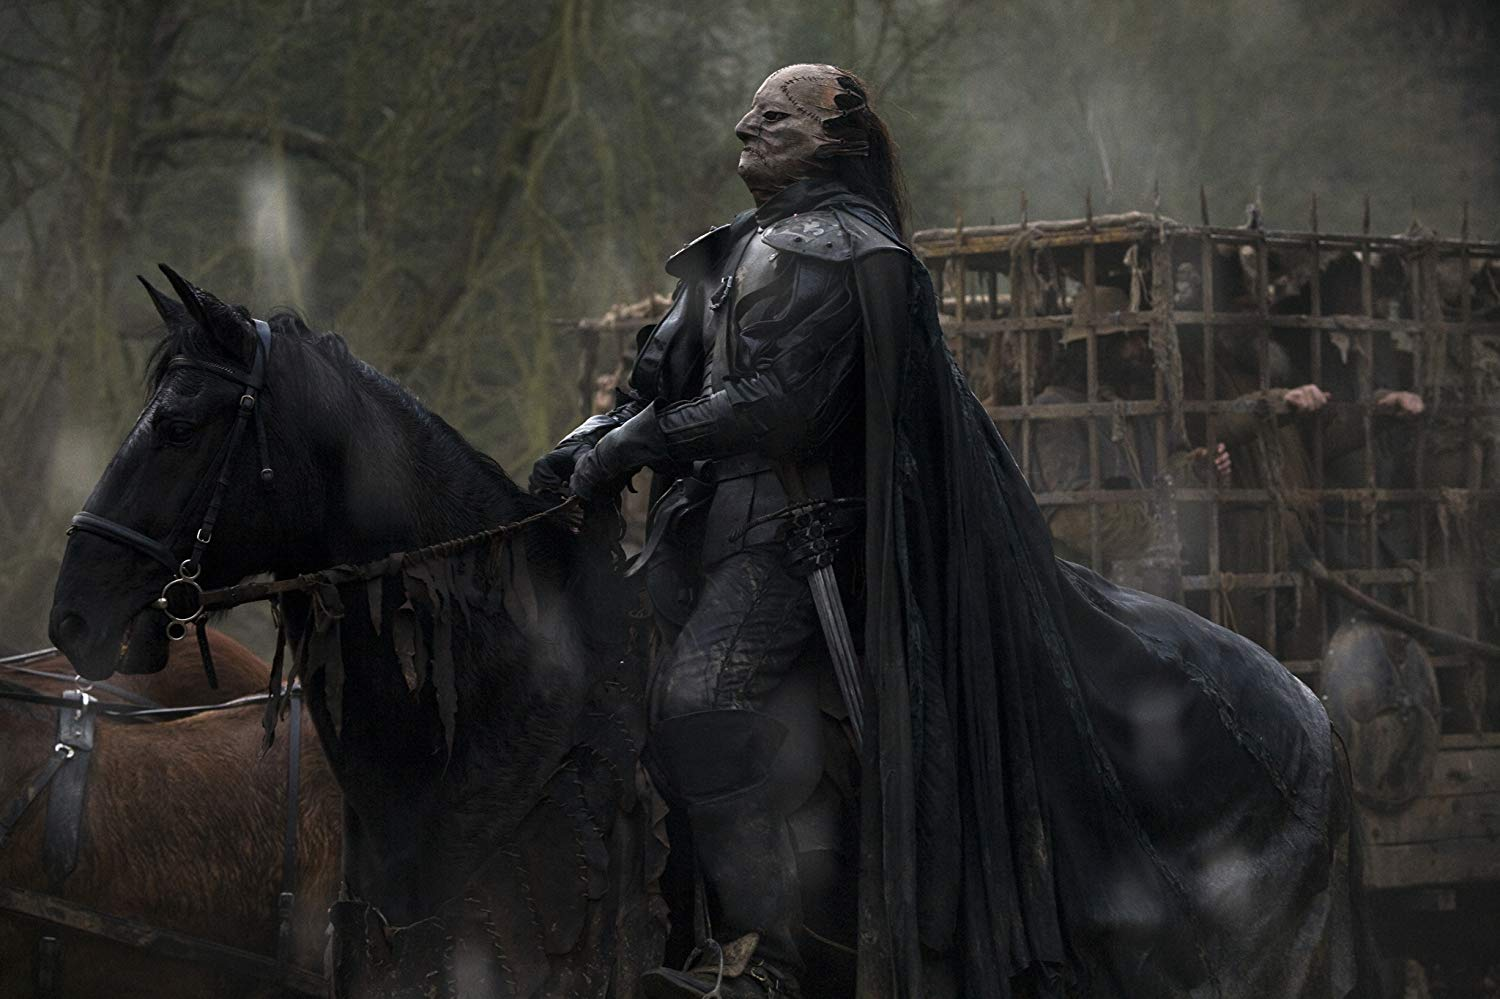 The Overlord (Sam Roukin) in Solomon Kane (2009)